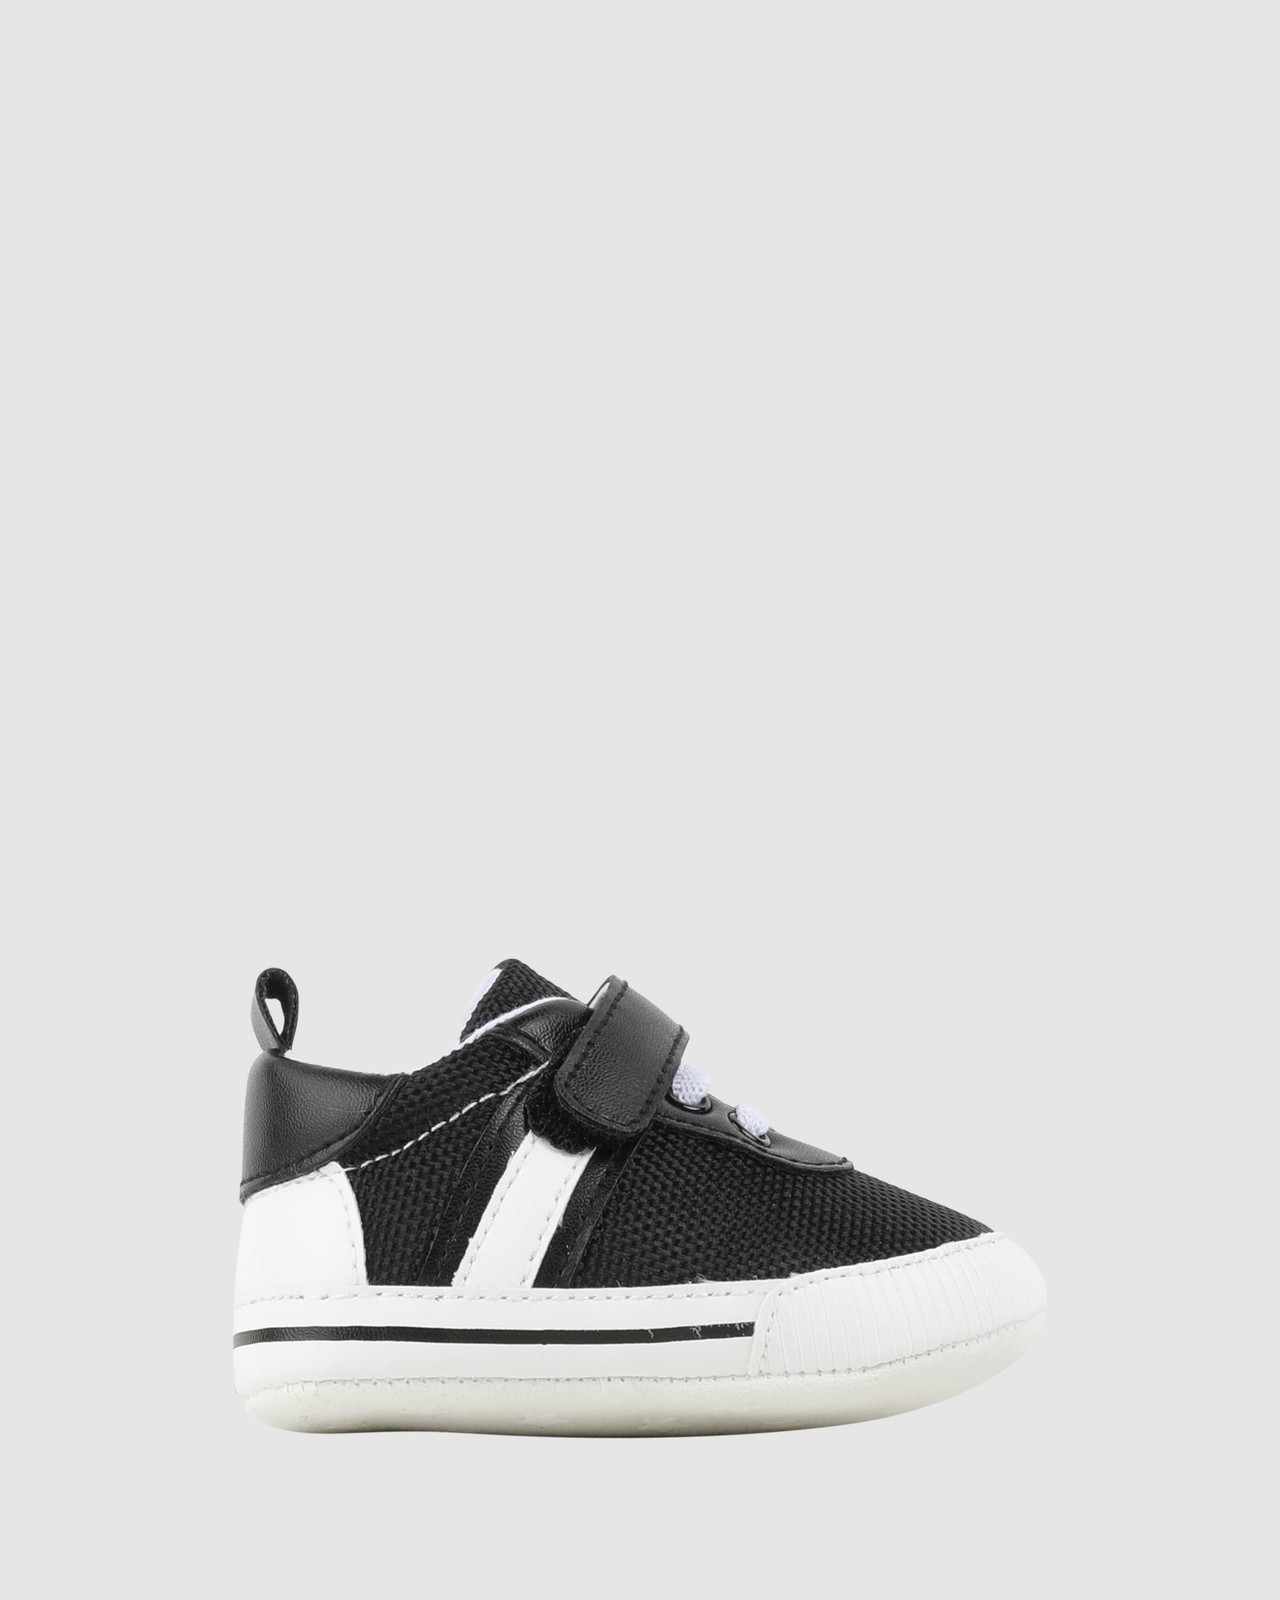 Shoes & Sox Boys Kenny Sneakers Black/White